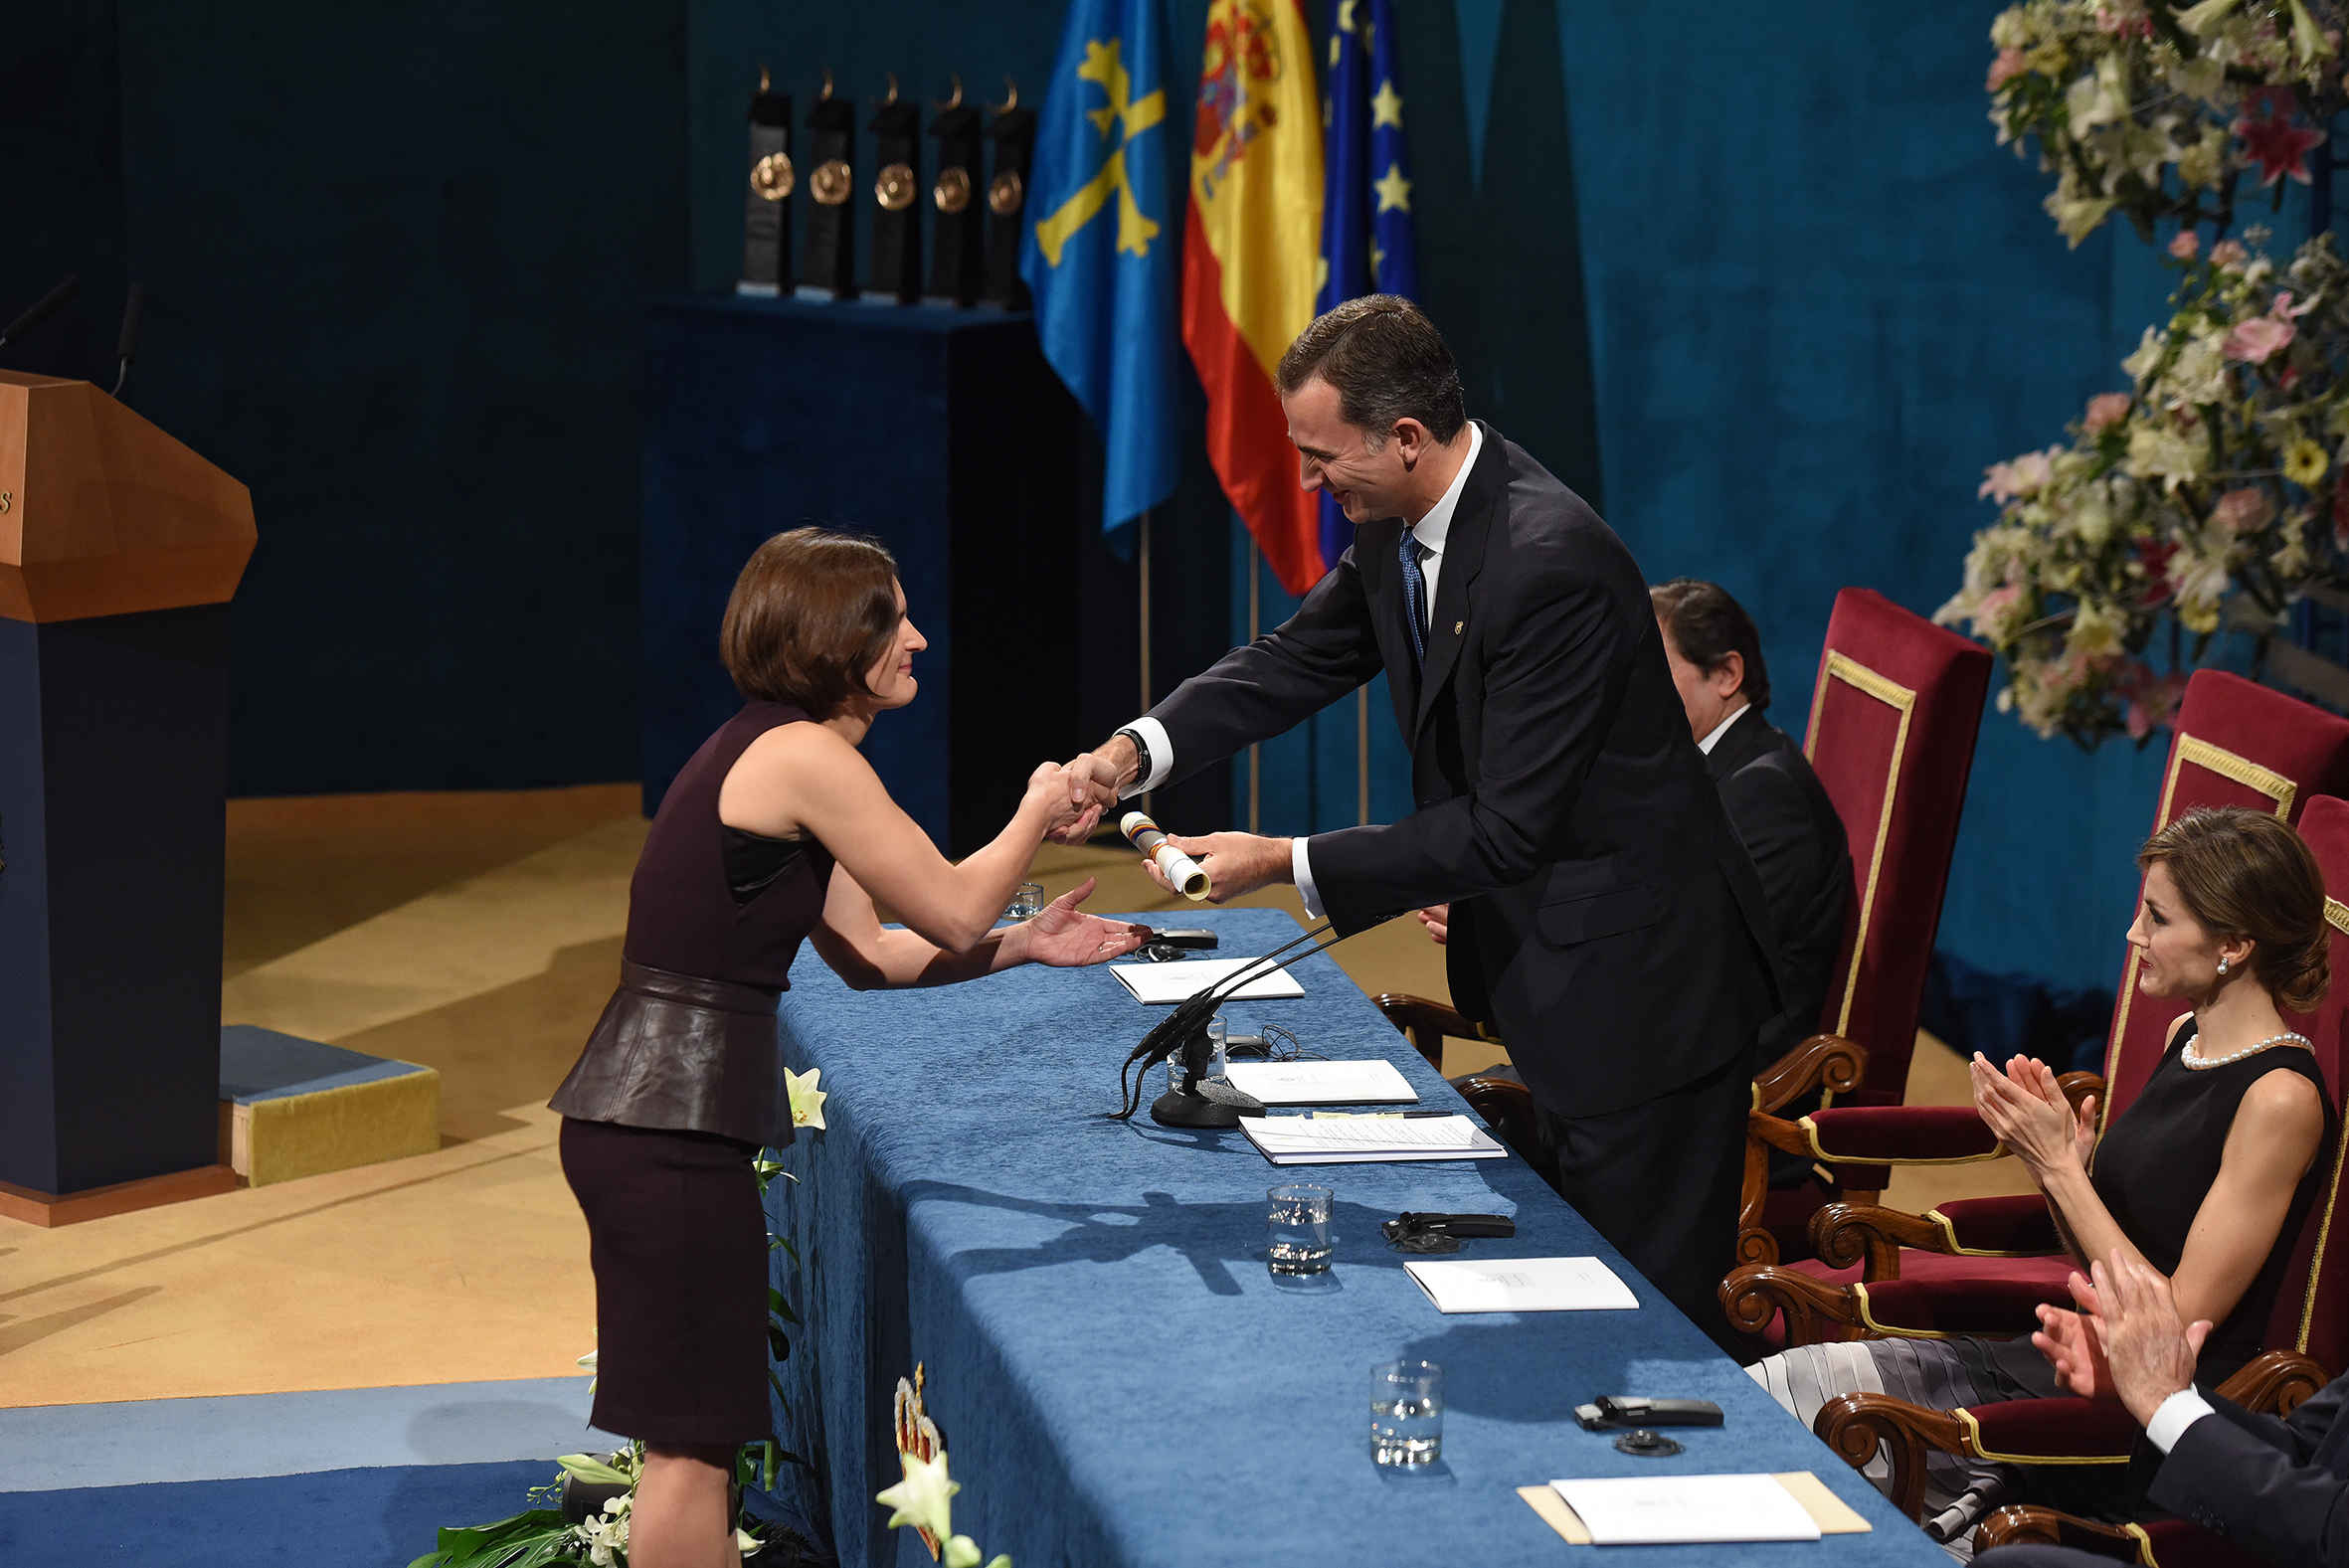 2015 Princess of Asturias Awards